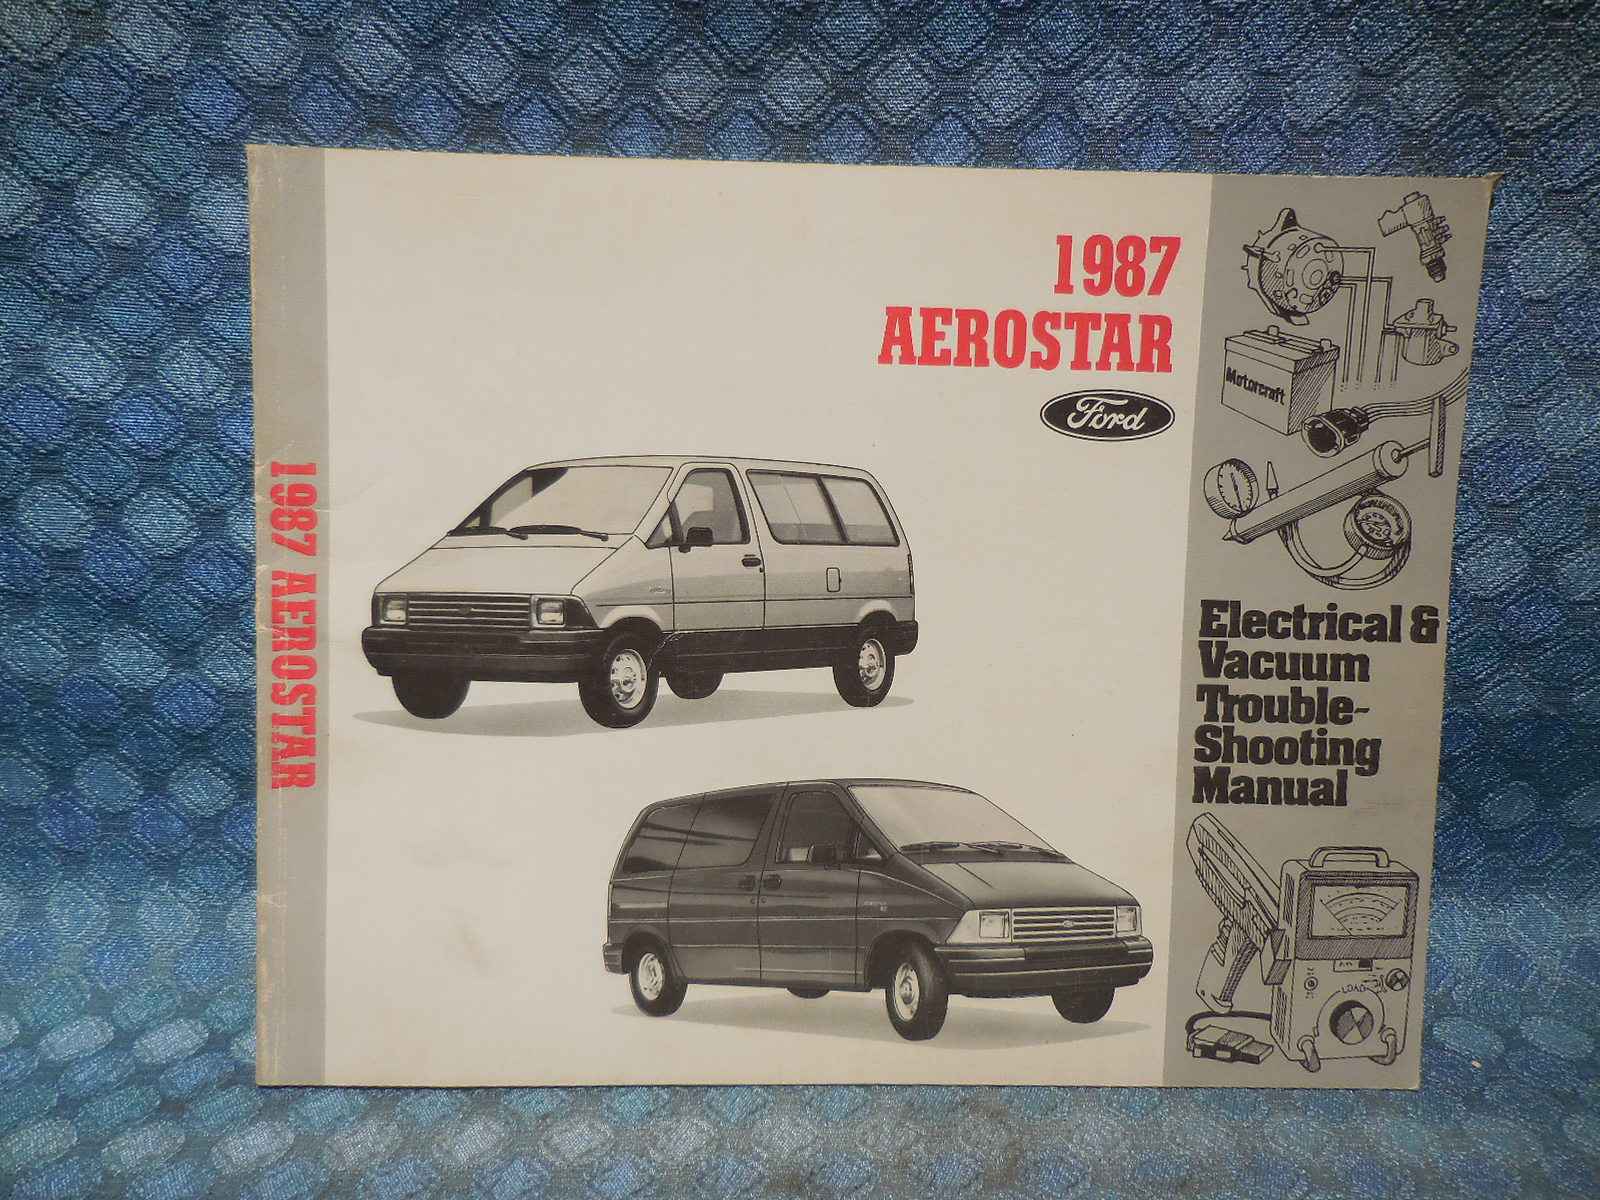 1993 Ford Aerostar Electrical And Vacuum Troubleshooting Manual